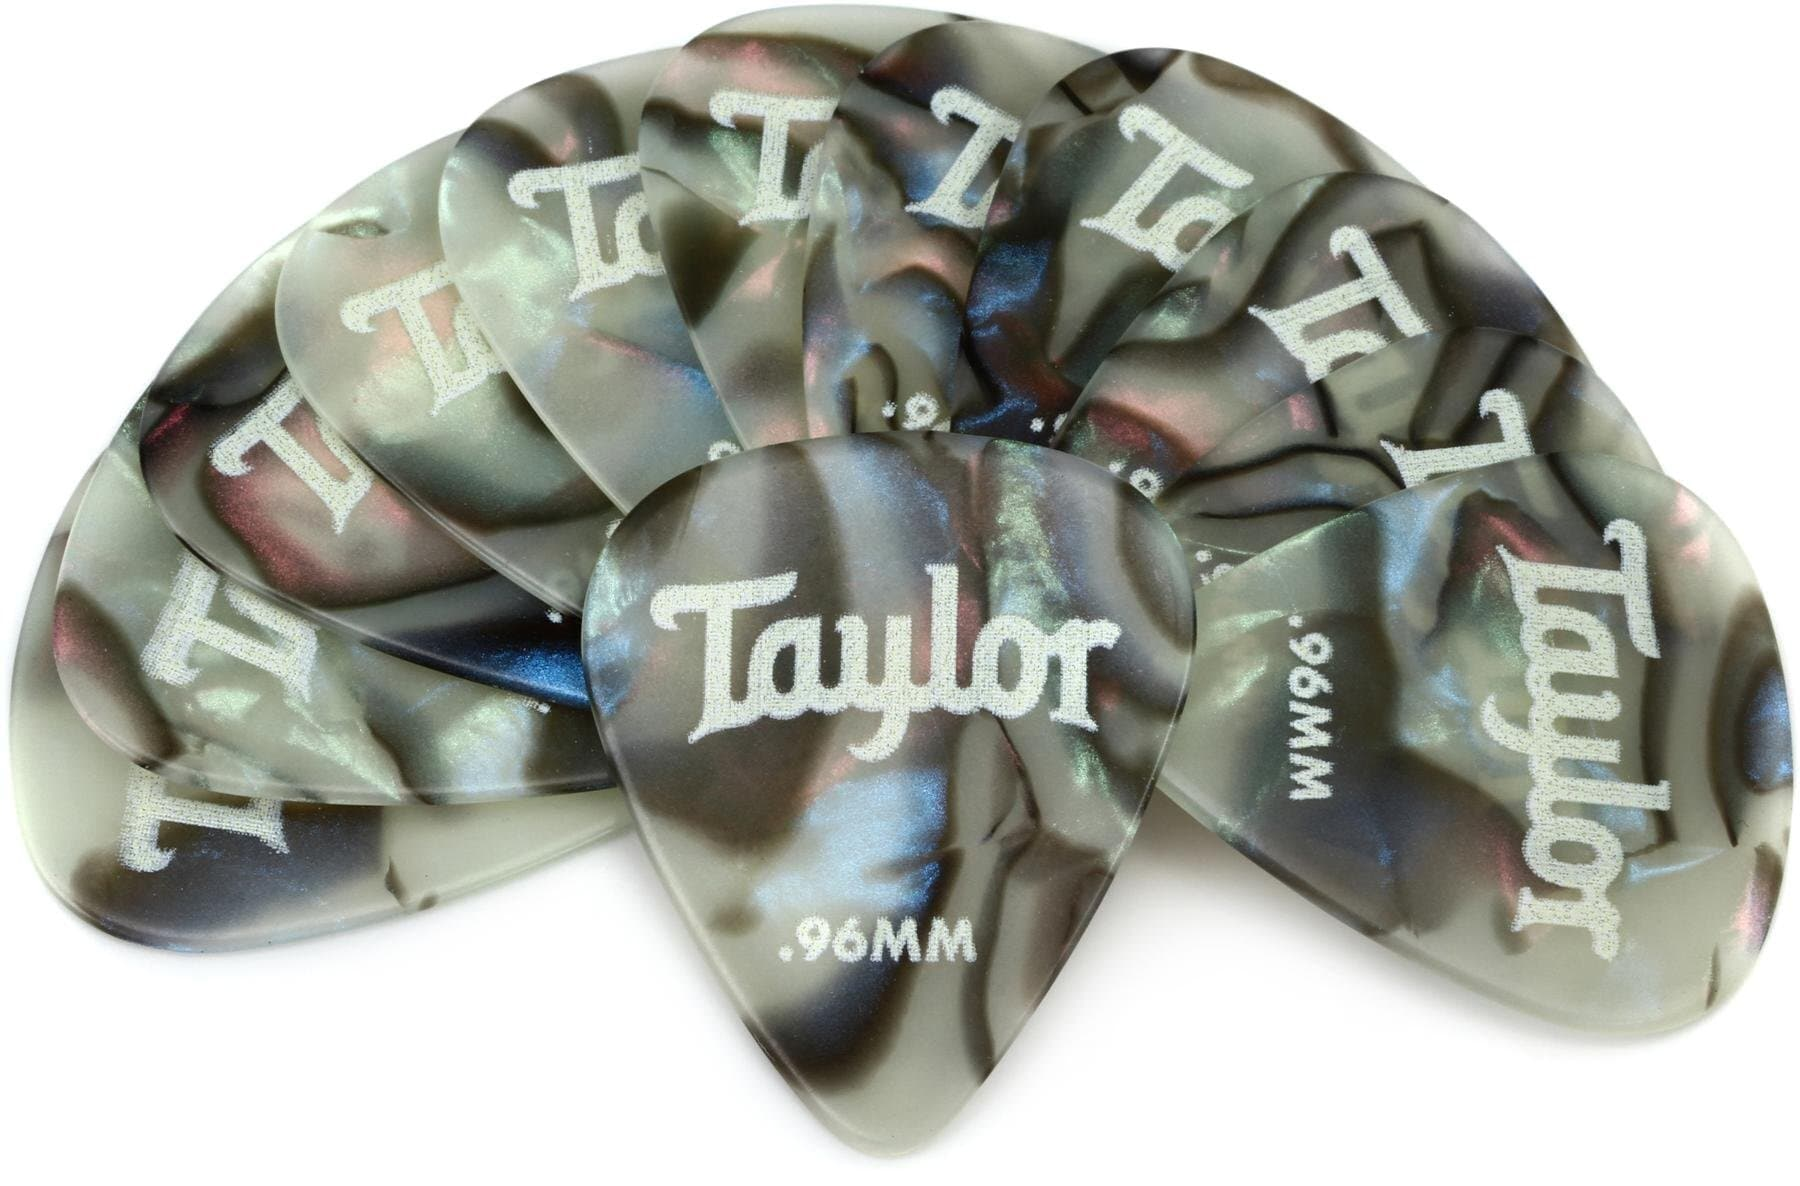 Taylor Celluloid 351 Picks, Abalone 0.96, 12-pack